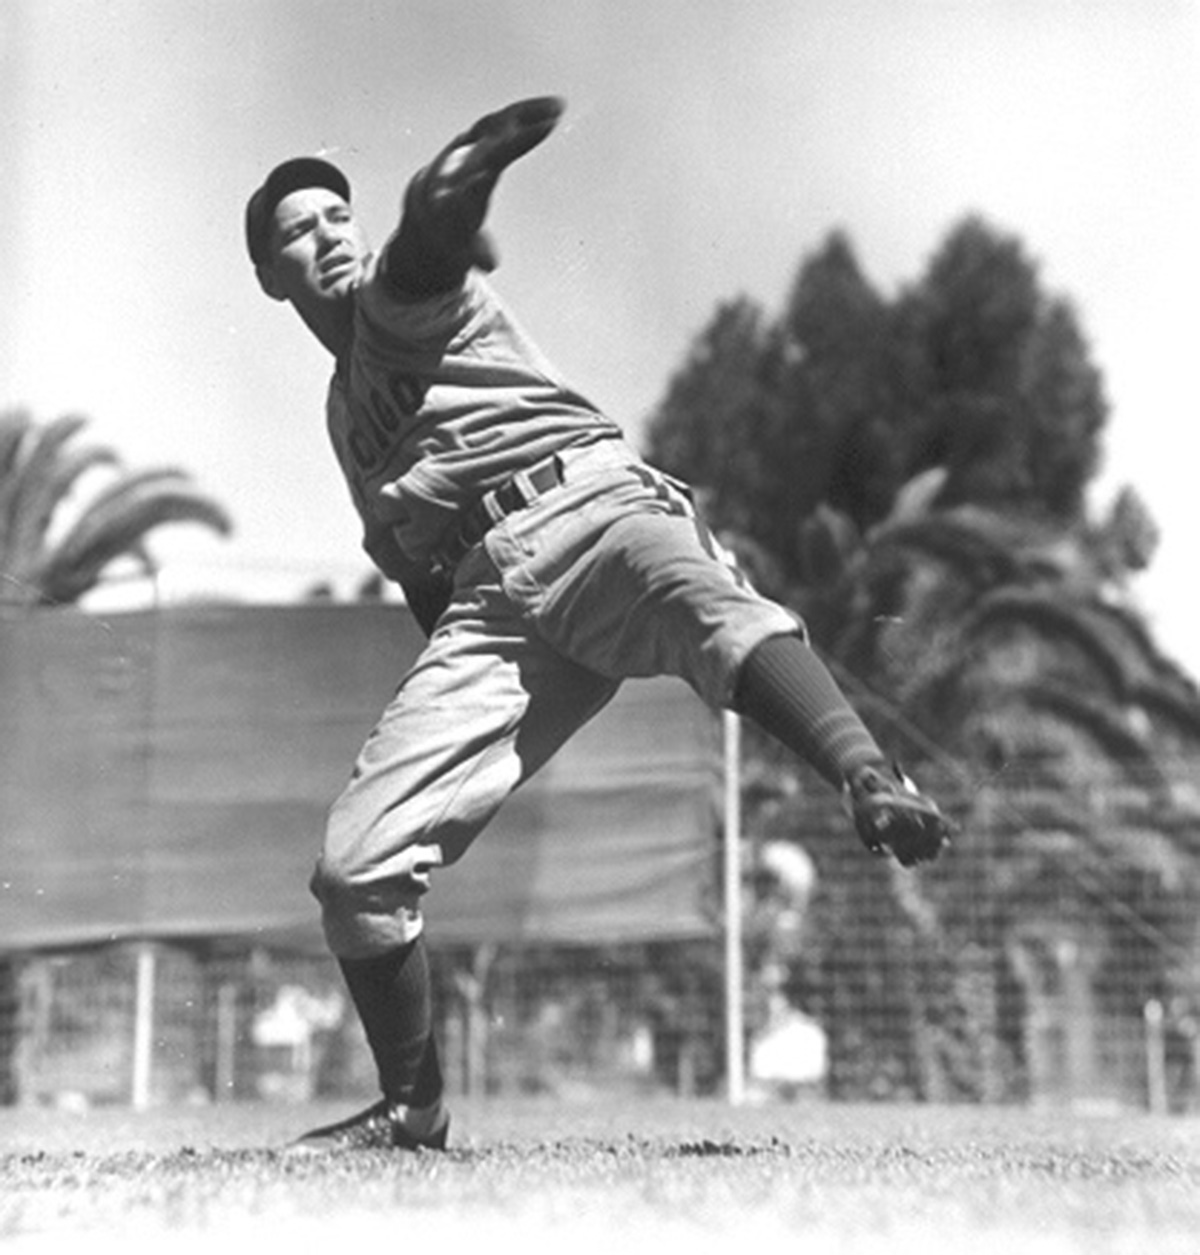 Wrigley's Chicago Cubs held spring training on Catalina from 1921 – 1951; players included Hall of Famer Dizzy Dean (above)